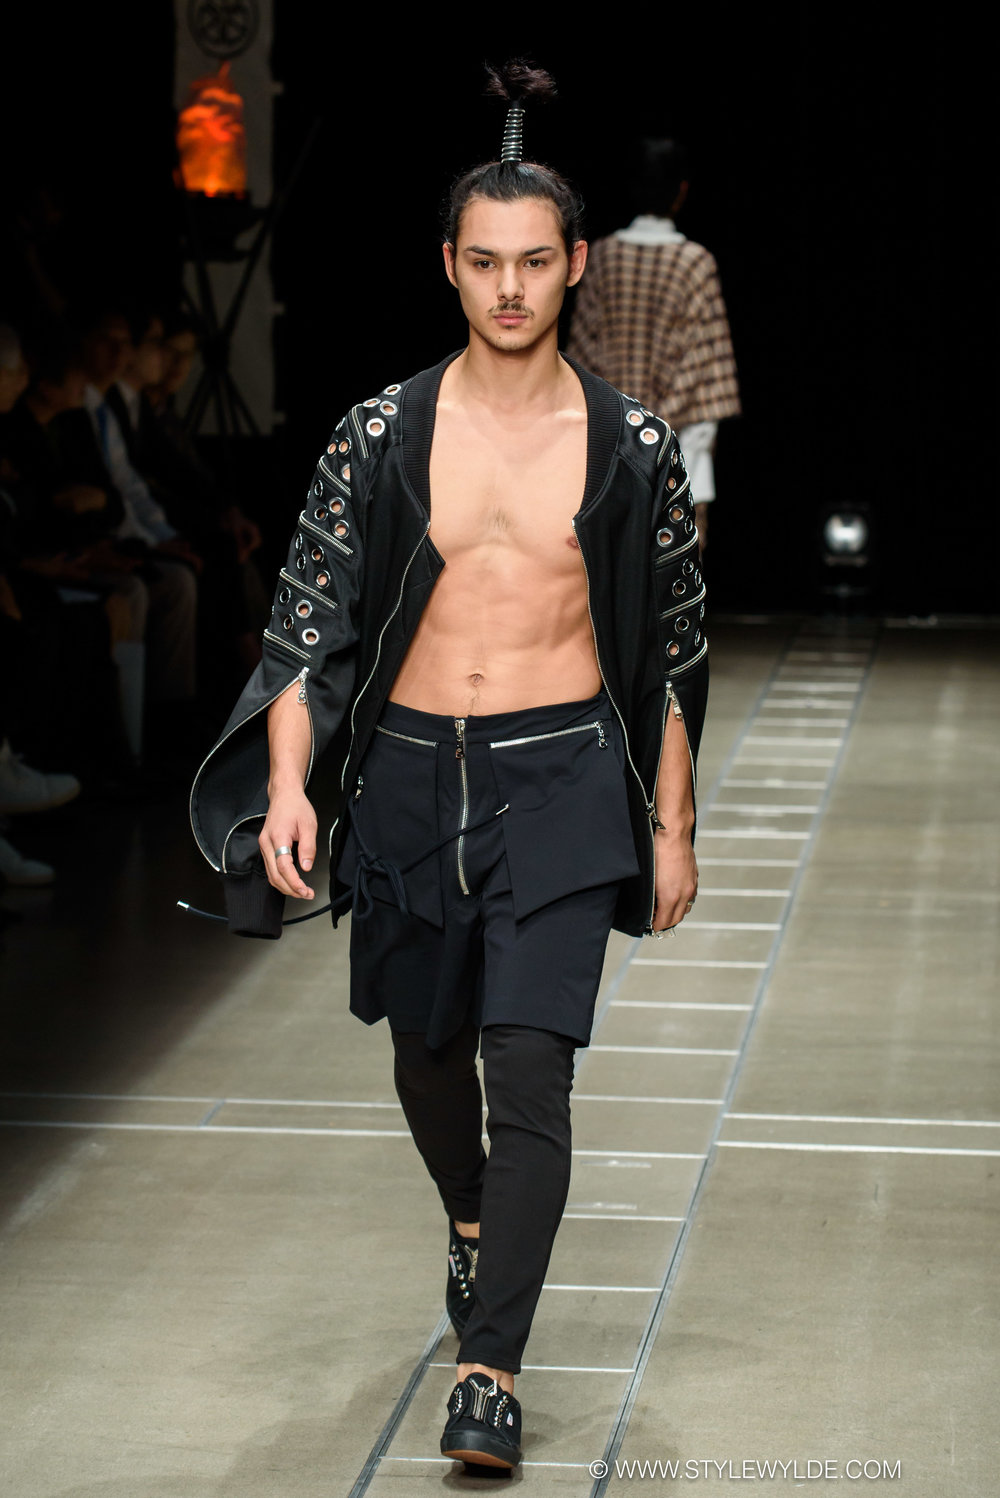 stylewylde_acuod_by_chanu_SS18_runway-28.jpg